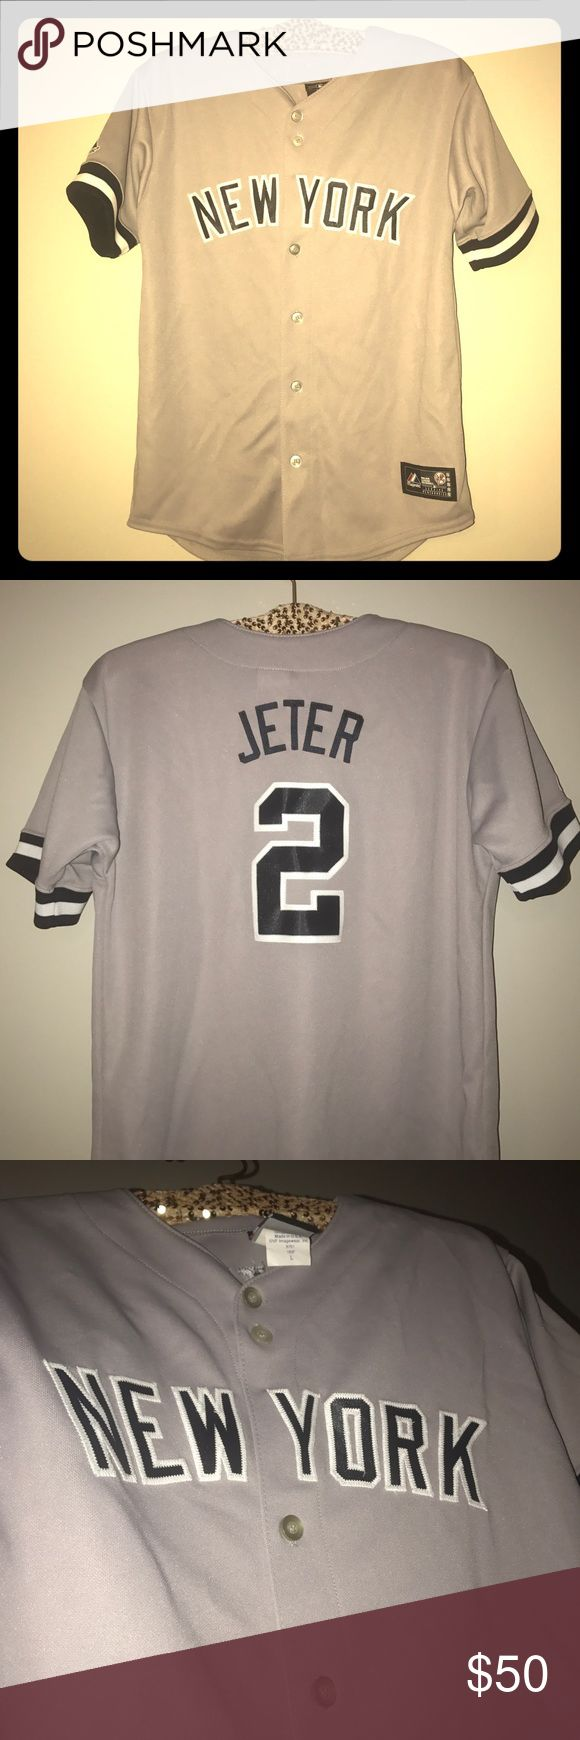 Authentic NY Yankees Jeter Jersey This is an authentic NY Yankees Derek Jeter jersey that was not made by an knock off brand. It was purchased from a Major Leagues merchandising company that distributes jerseys and sports team merchandise to ML stadiums only. It is brand new and never been worn because I wasn't able to go to the game that I planned to wear it to. Never gotten the chance to go again so I want to pass it on to another Yankees fan!! Majestic Tops Button Down Shirts